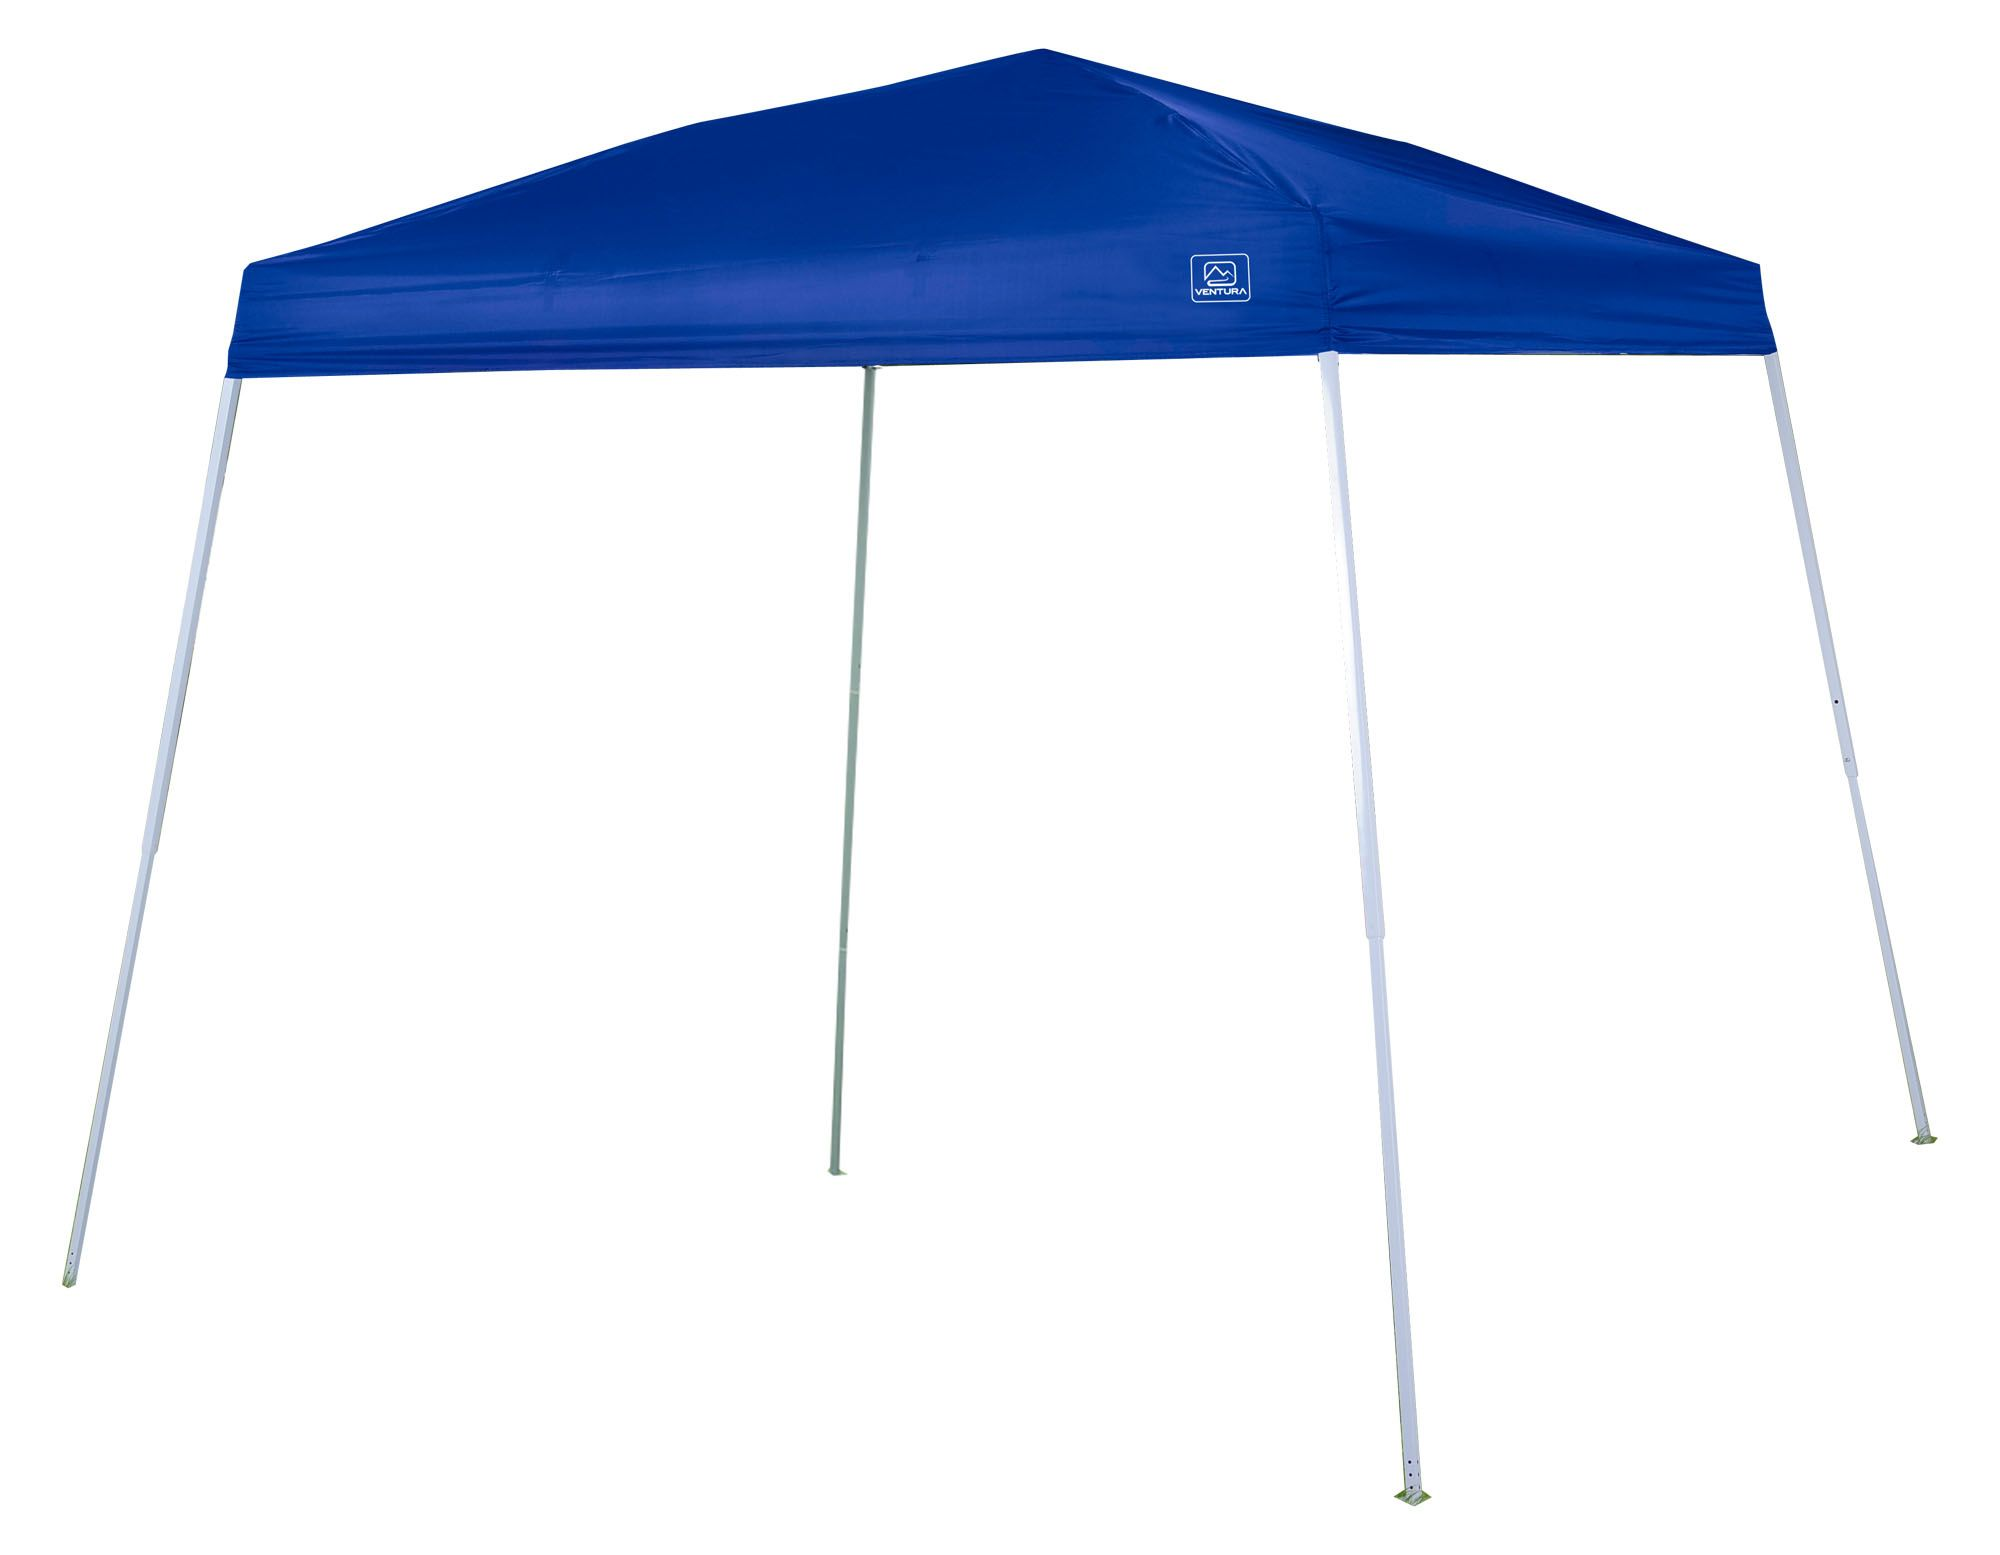 Ventura 9ft x 9ft Super Light Weight Gazebo C&ing | Walmart Canada Online Shopping $69.97  sc 1 st  Pinterest & Ventura 9ft x 9ft Super Light Weight Gazebo Camping | Walmart ...